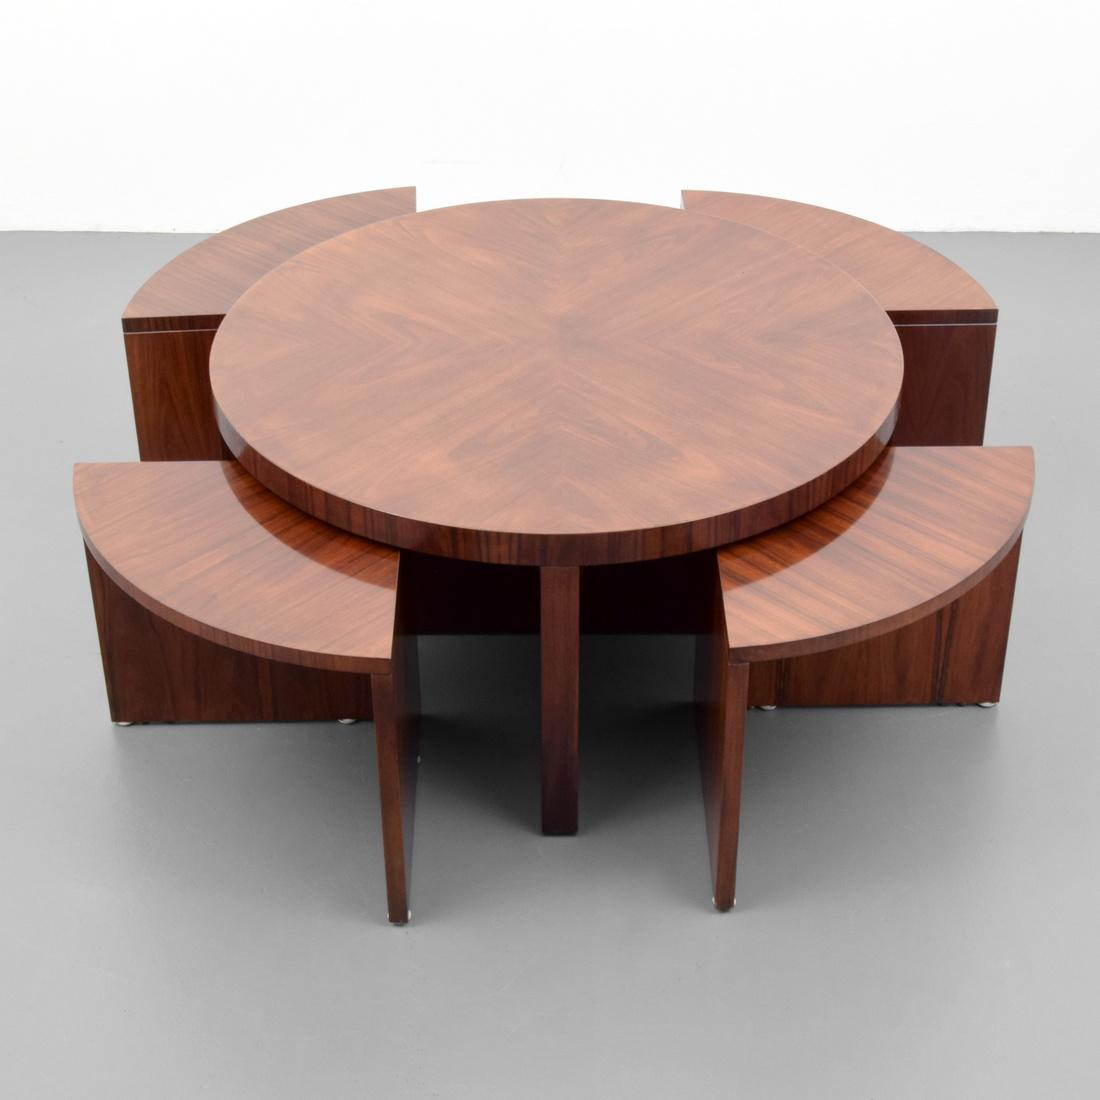 Ralph Lauren Duke Coffee Table With Nesting Tables Palm Beach Modern Auctions